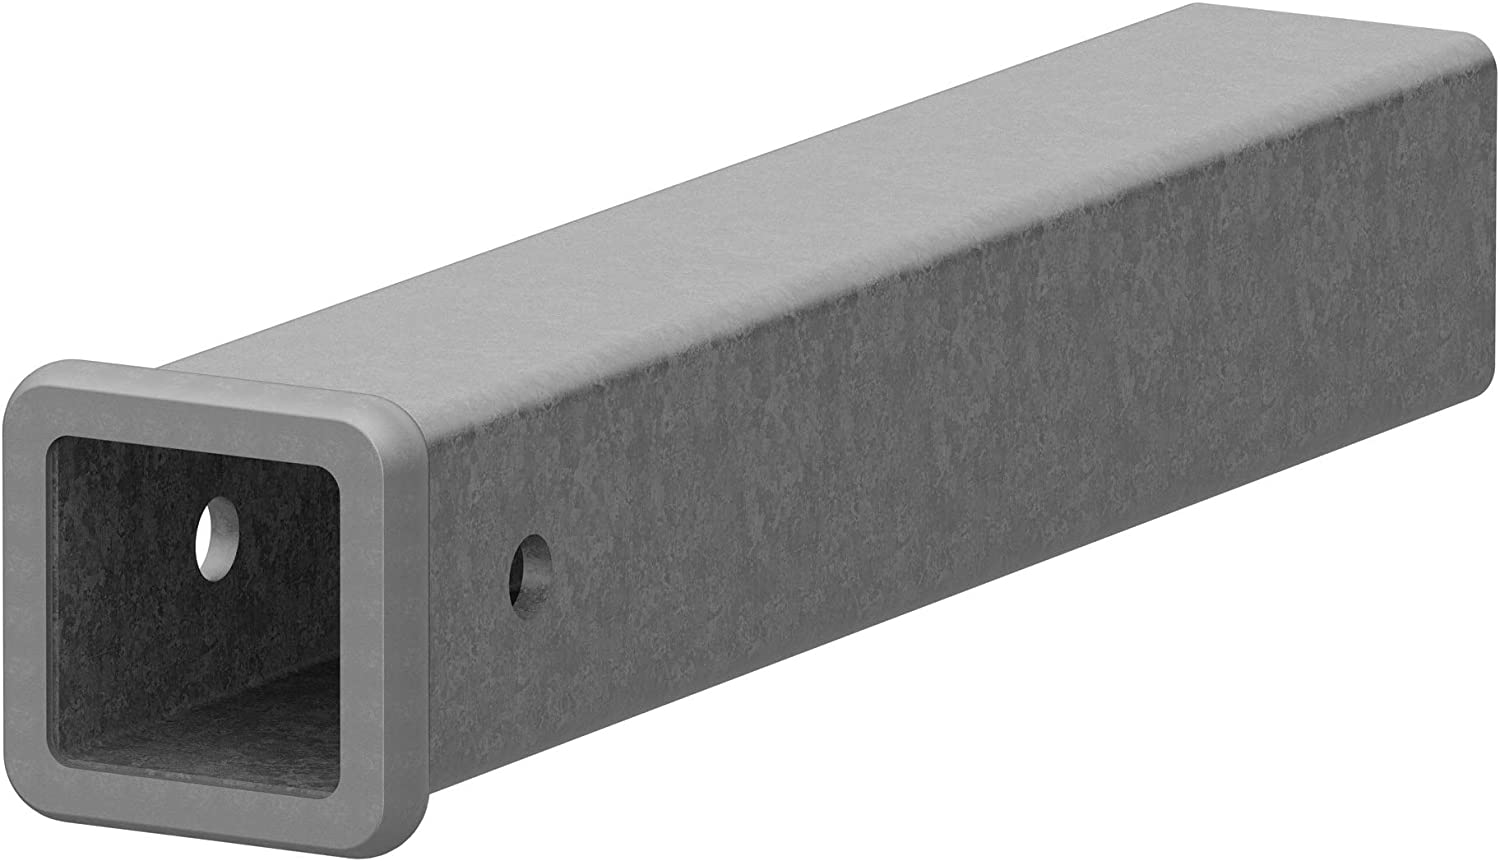 CURT 49511 2-1/2-Inch x 18-Inch Weld-On Raw Steel Trailer Hitch Receiver Tube